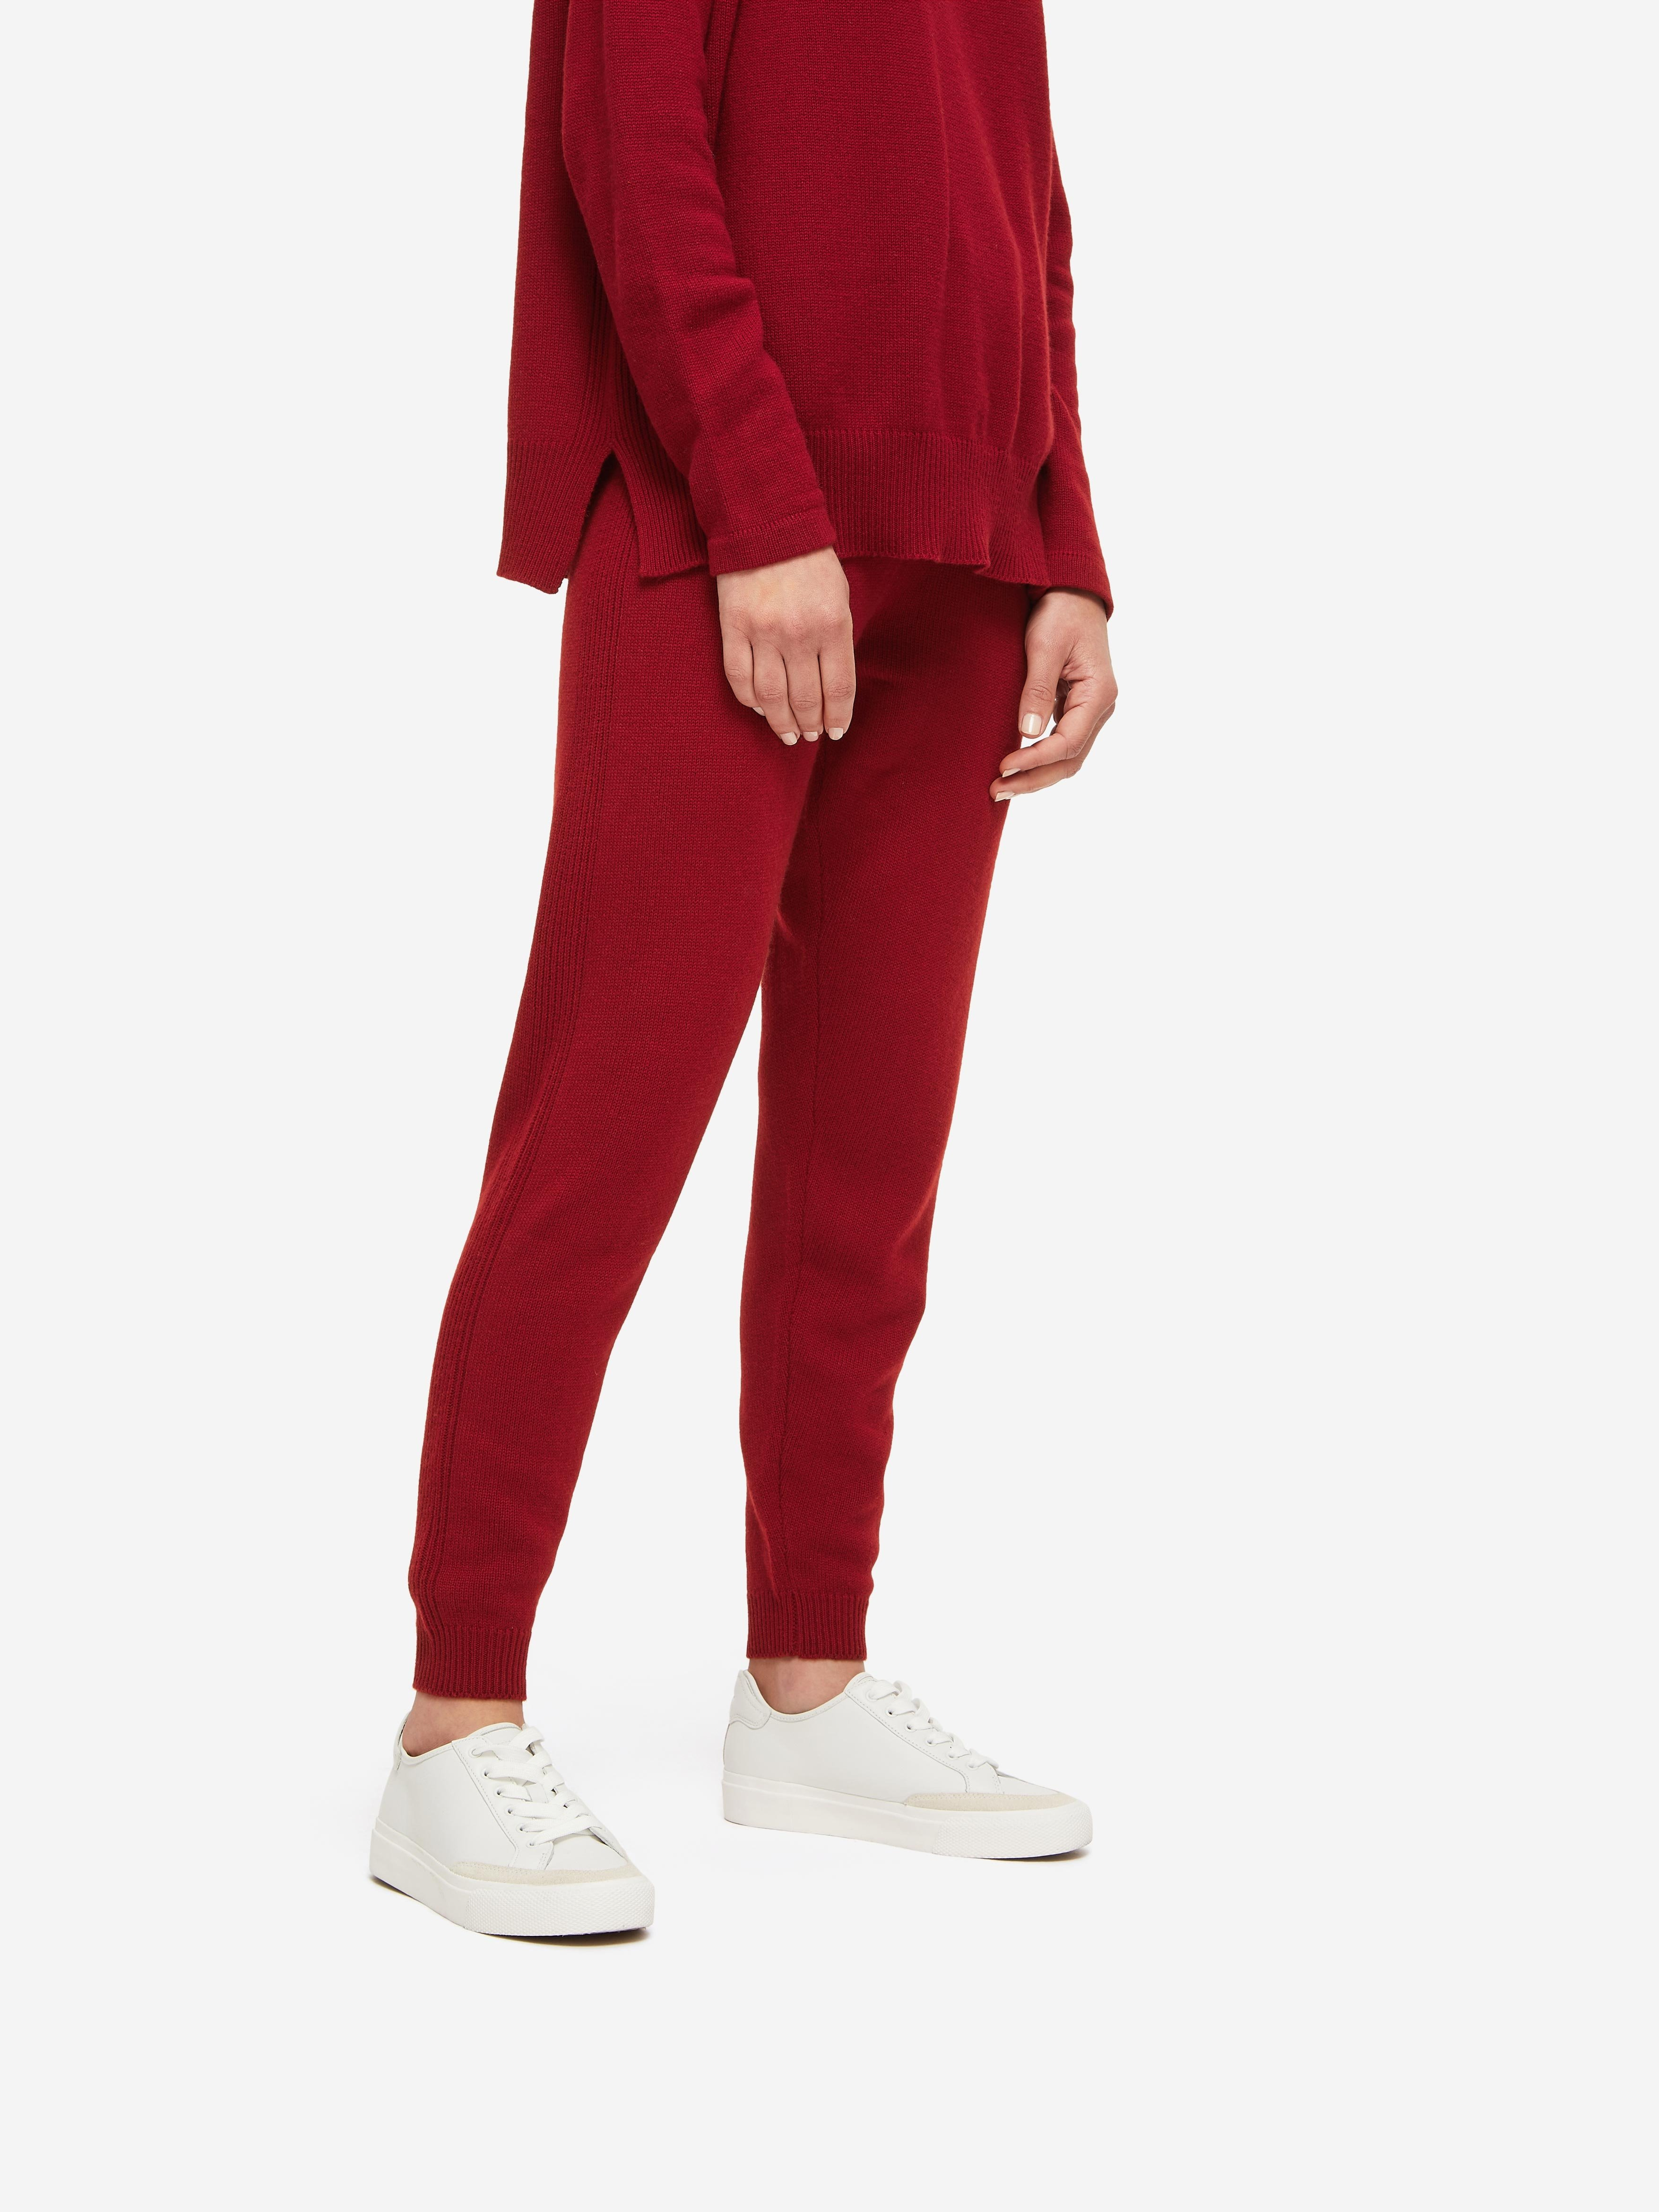 Women's Track Pants Daphne Cashmere Red